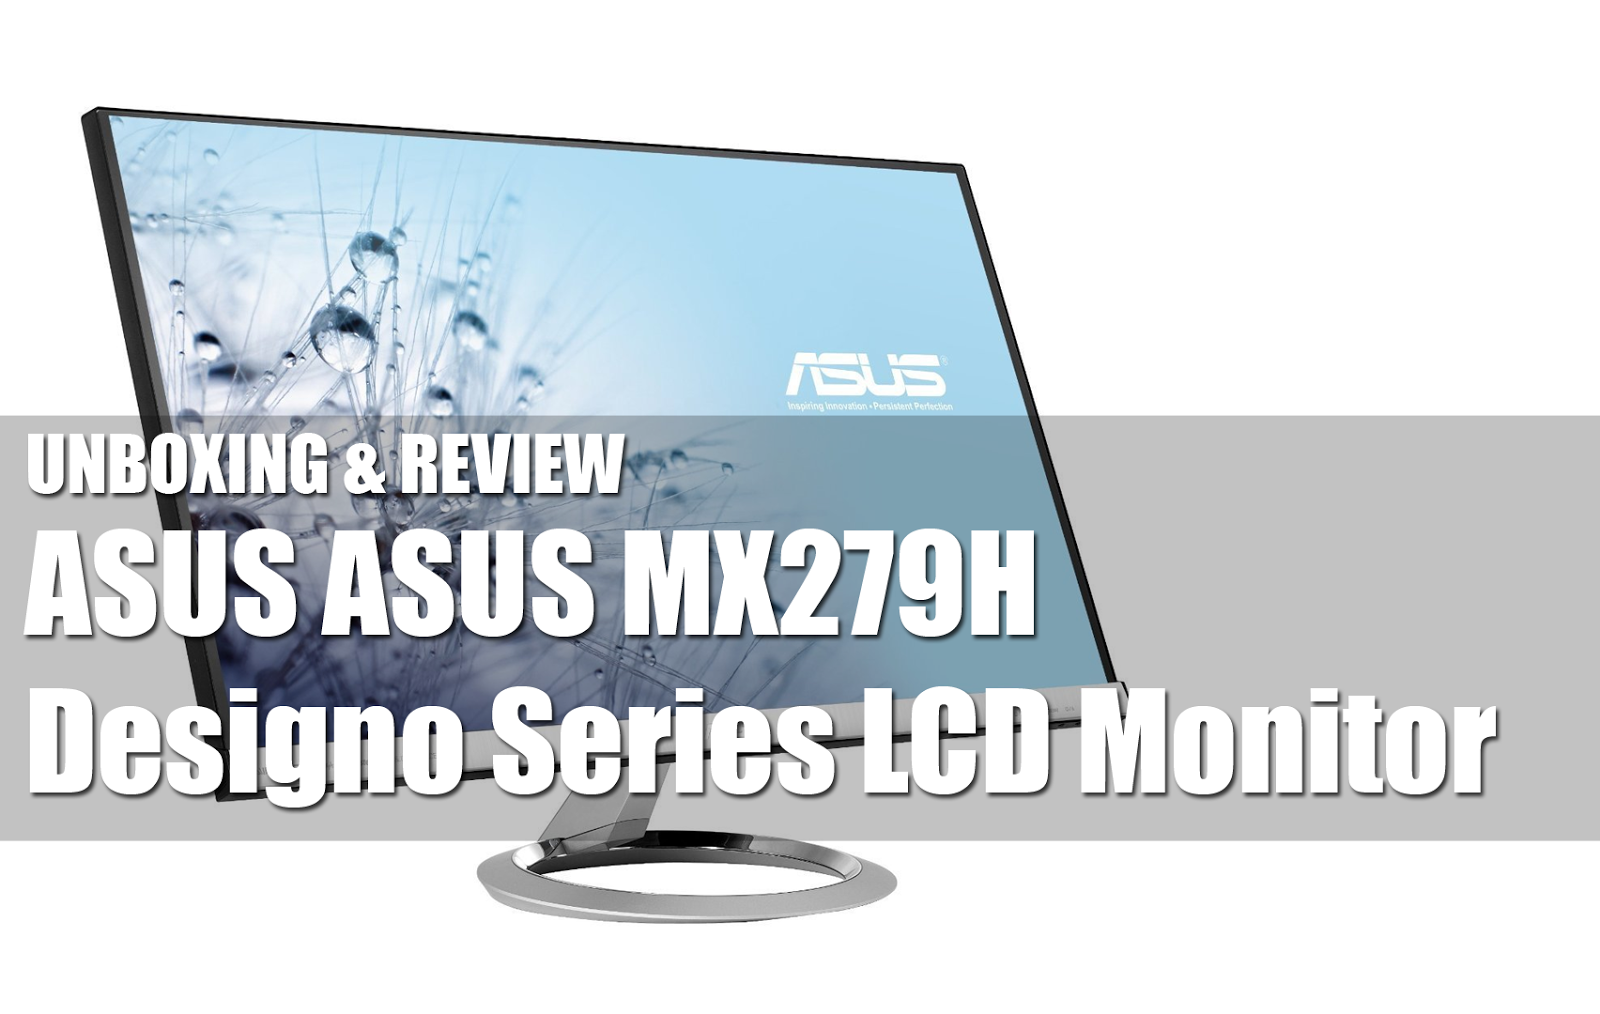 Unboxing & Review: ASUS MX279H Designo Series LCD Monitor 1